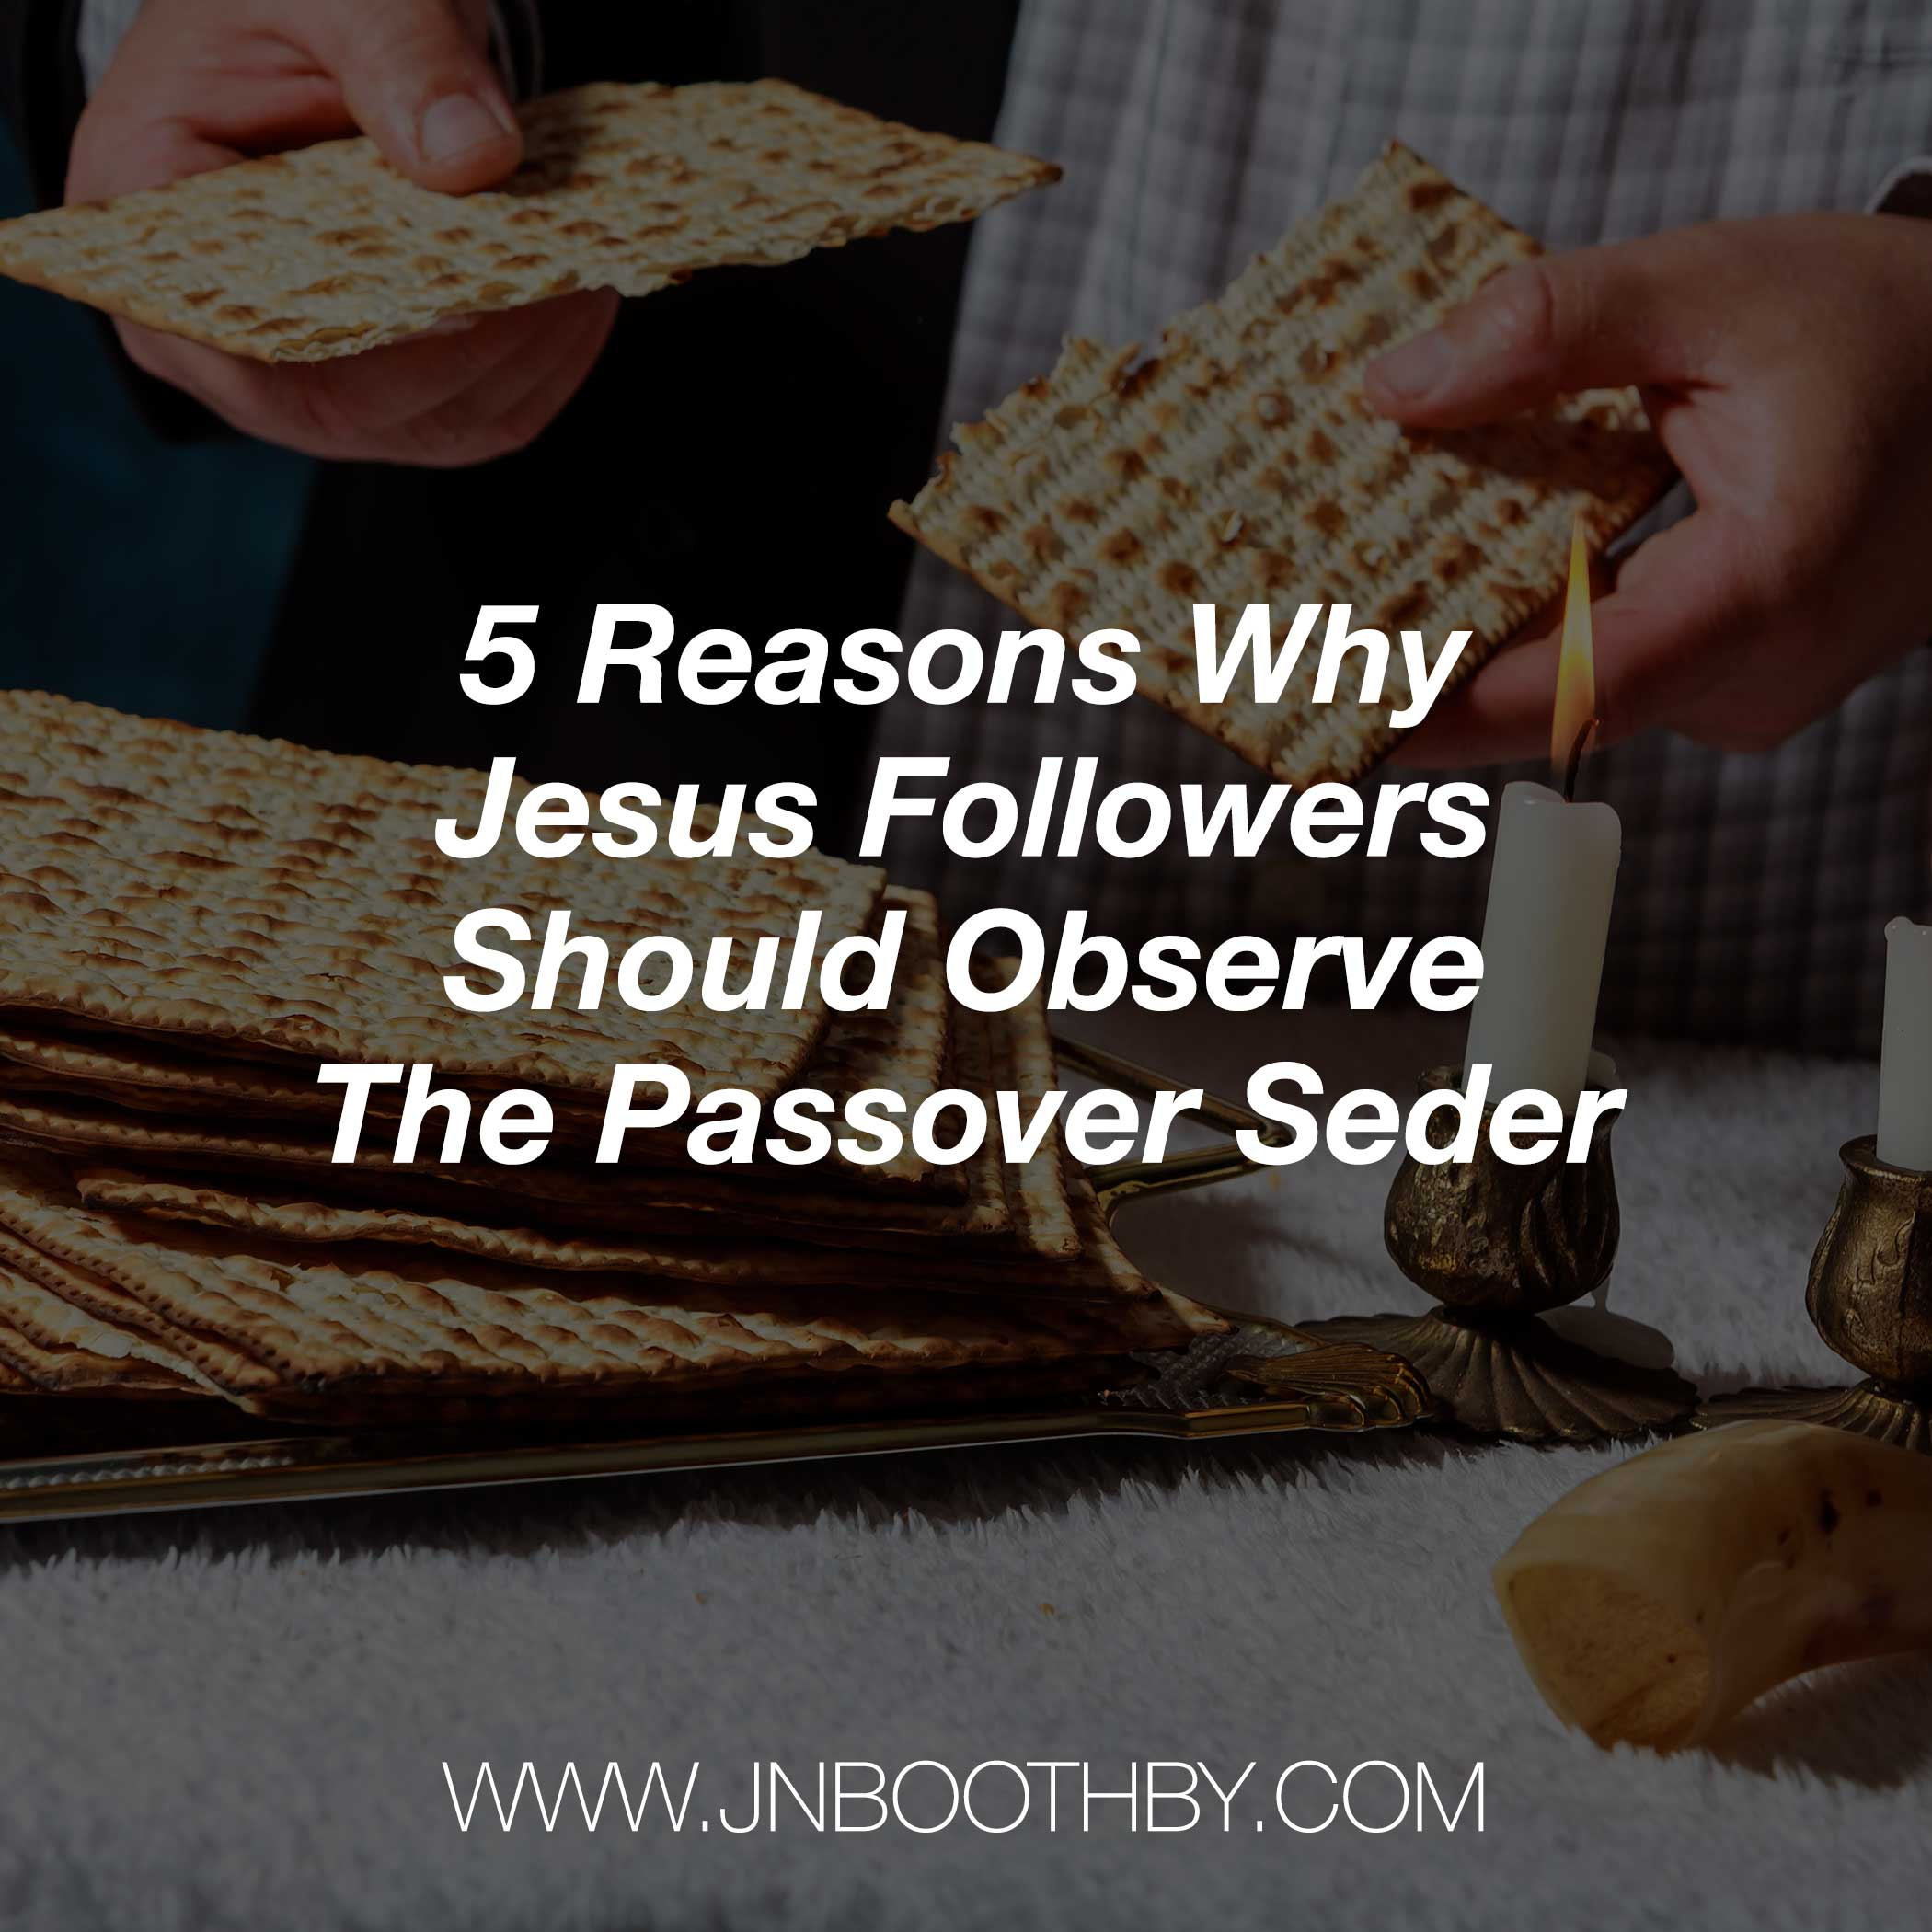 5 Reasons Jesus Followers Should Observe The Passover Seder